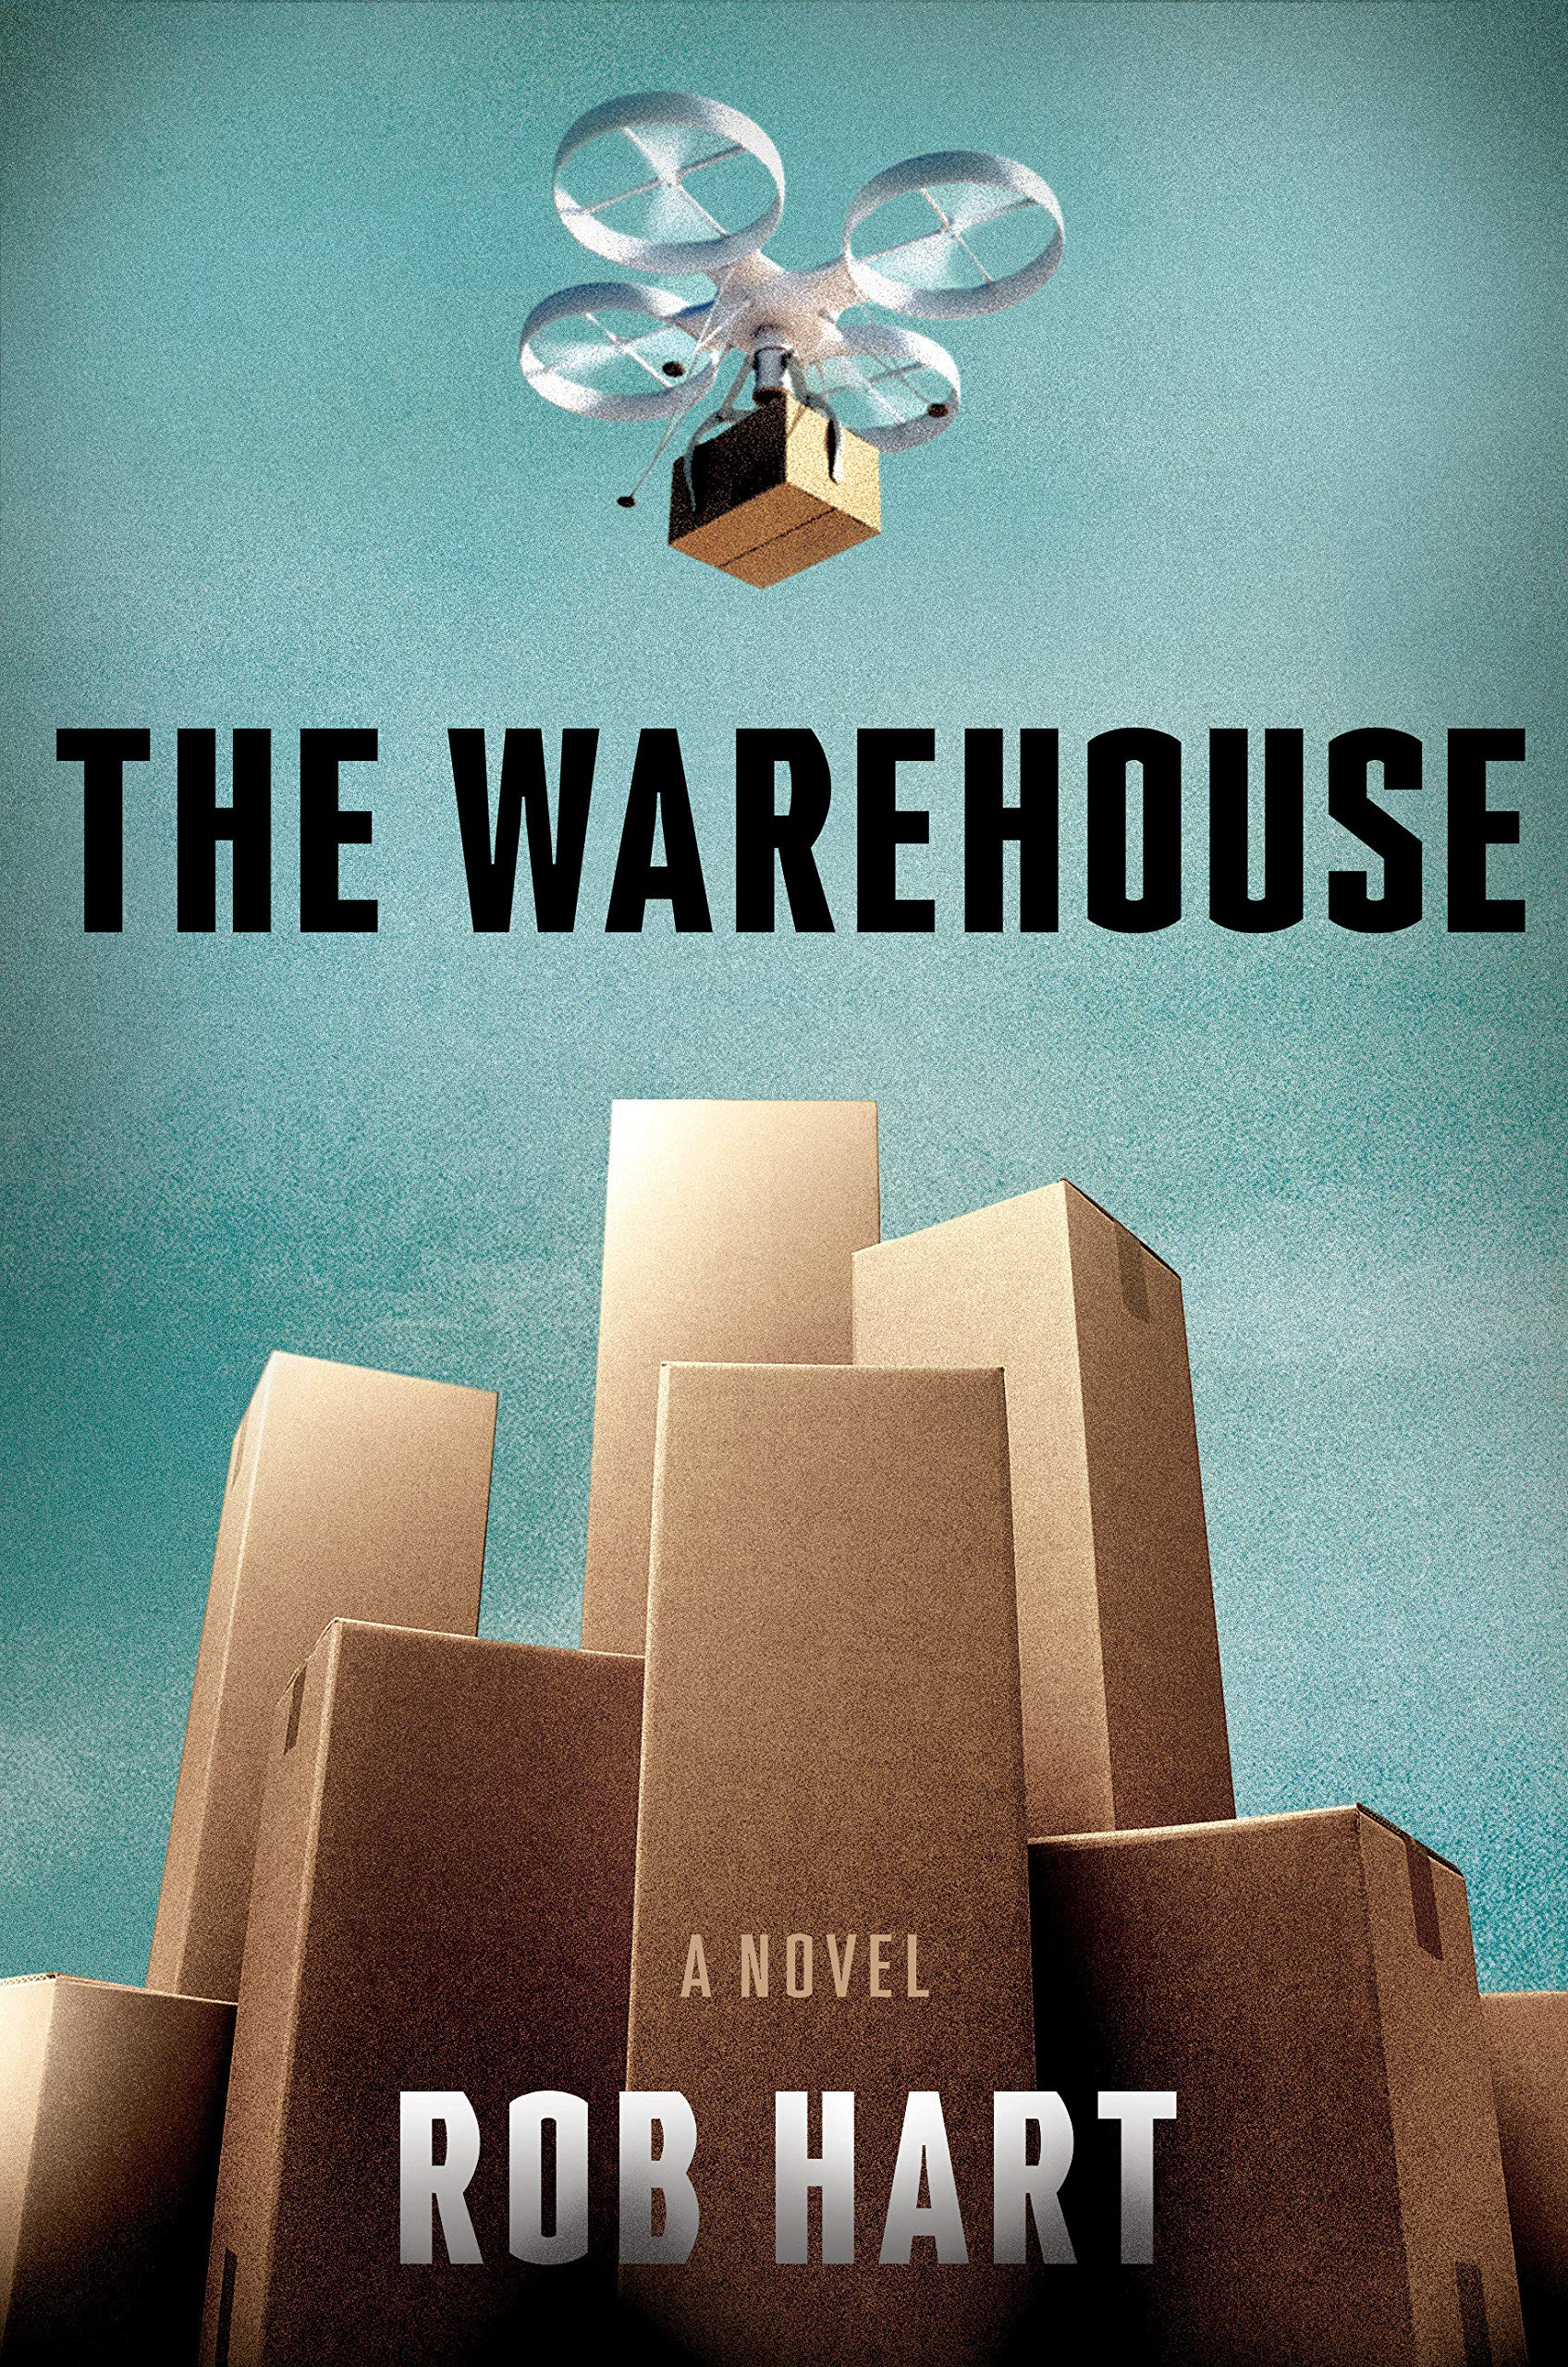 Rob Hart: Five Things I Learned Writing The Warehouse